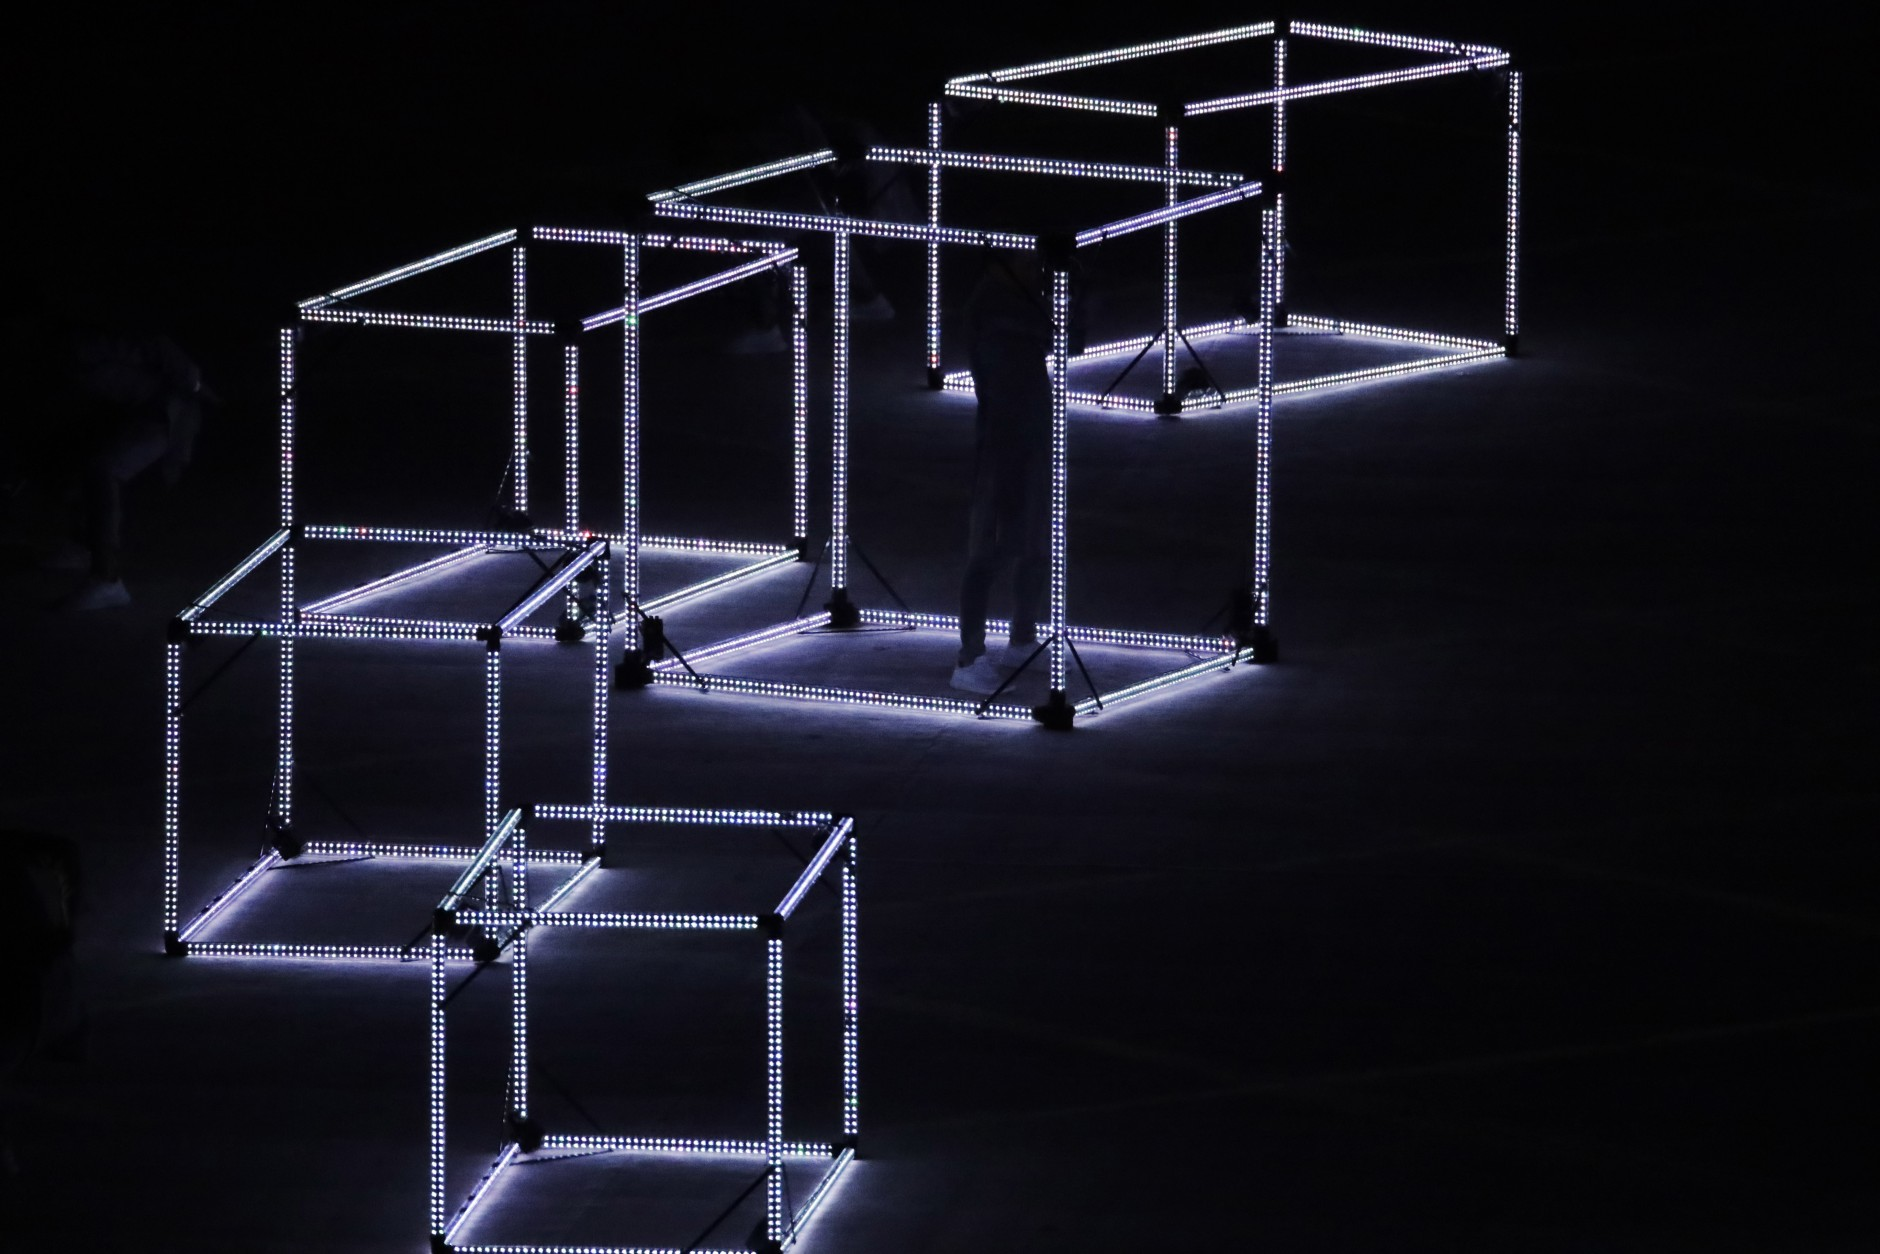 Illuminated cubes are featured during the closing ceremony in the Maracana stadium at the 2016 Summer Olympics in Rio de Janeiro, Brazil, Sunday, Aug. 21, 2016. (AP Photo/Charlie Riedel)